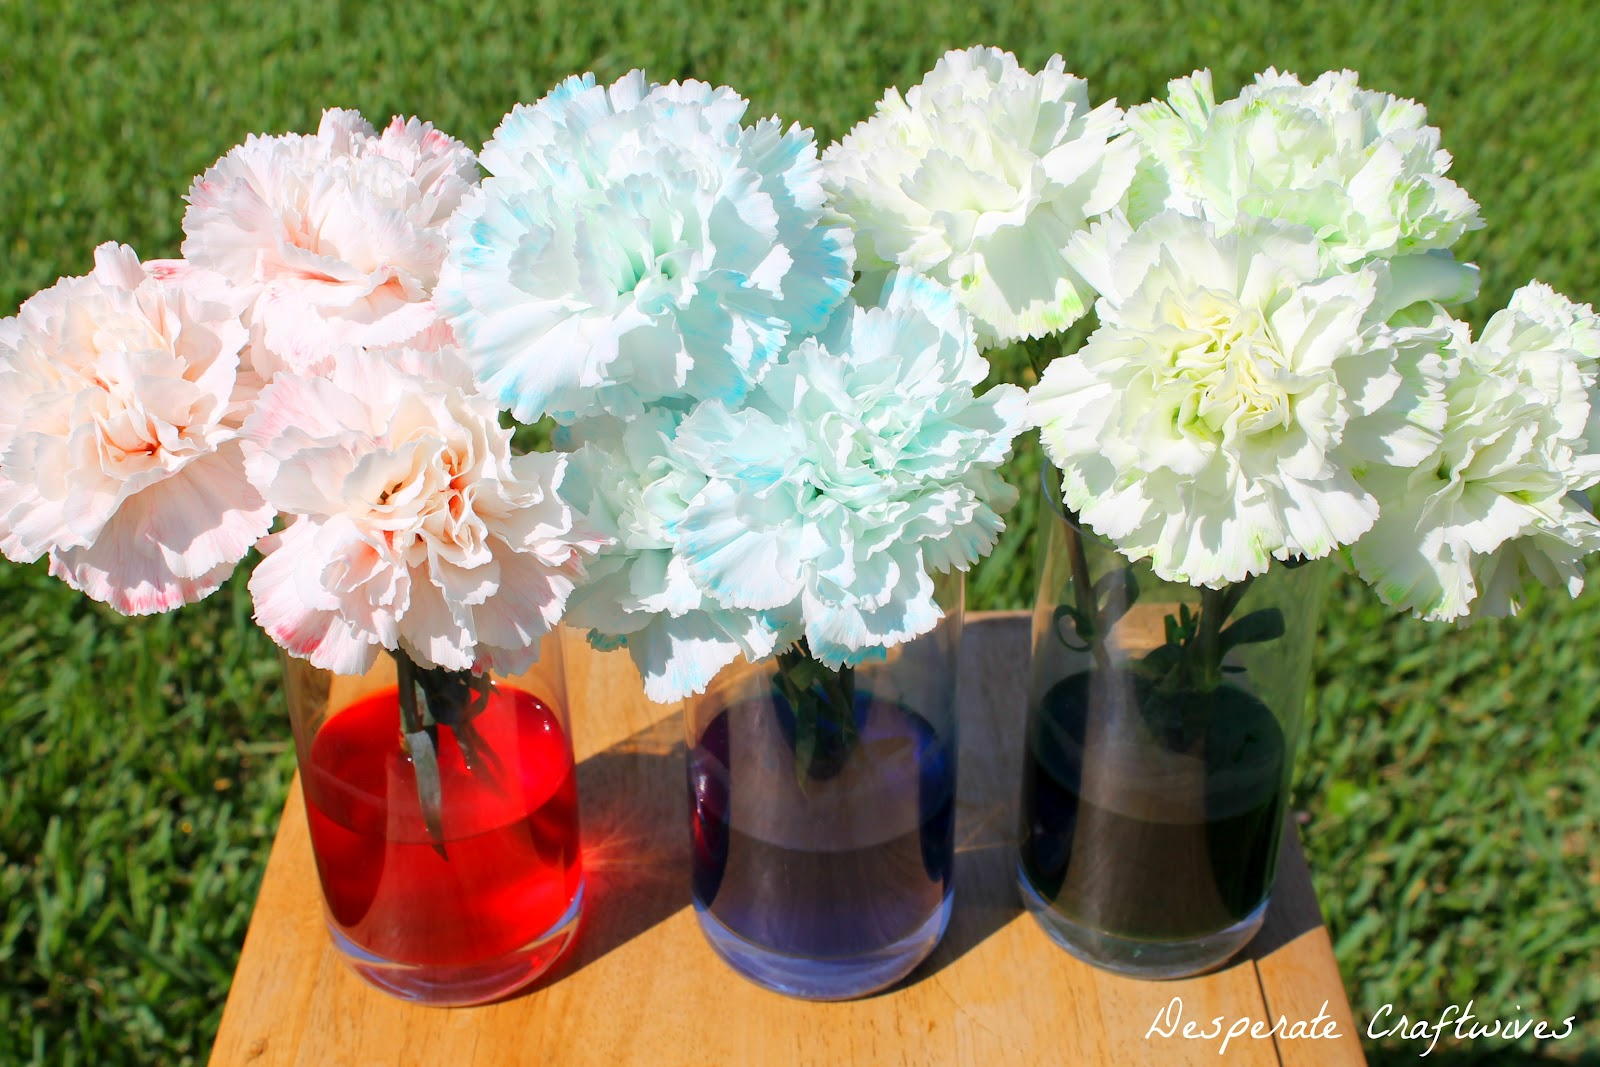 Desperate craftwives colored carnation experiment for How to dye flowers using food coloring